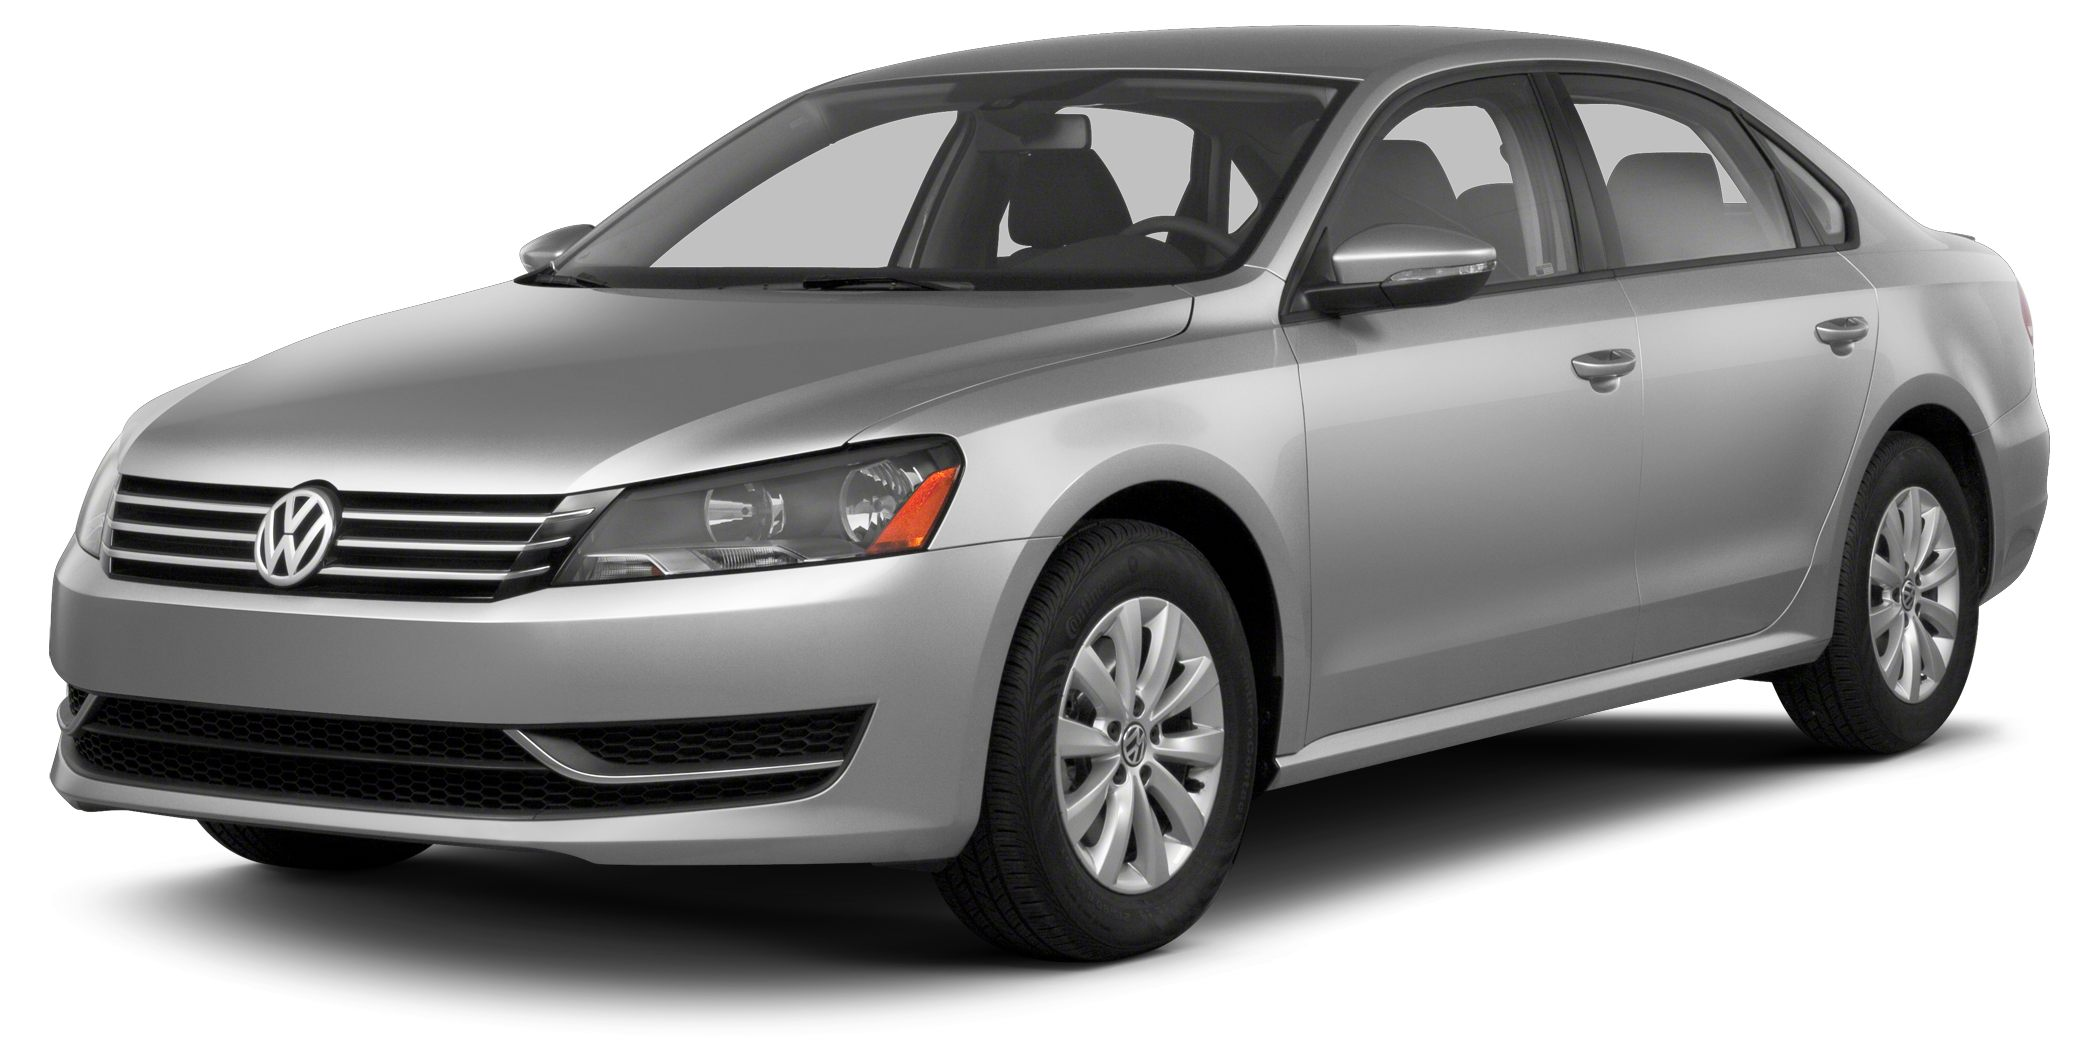 2013 Volkswagen Passat 25 S BLUETOOTH HEATED SEATS LOW MILES PASSAT VERY CLEAN INSIDE  OUT T